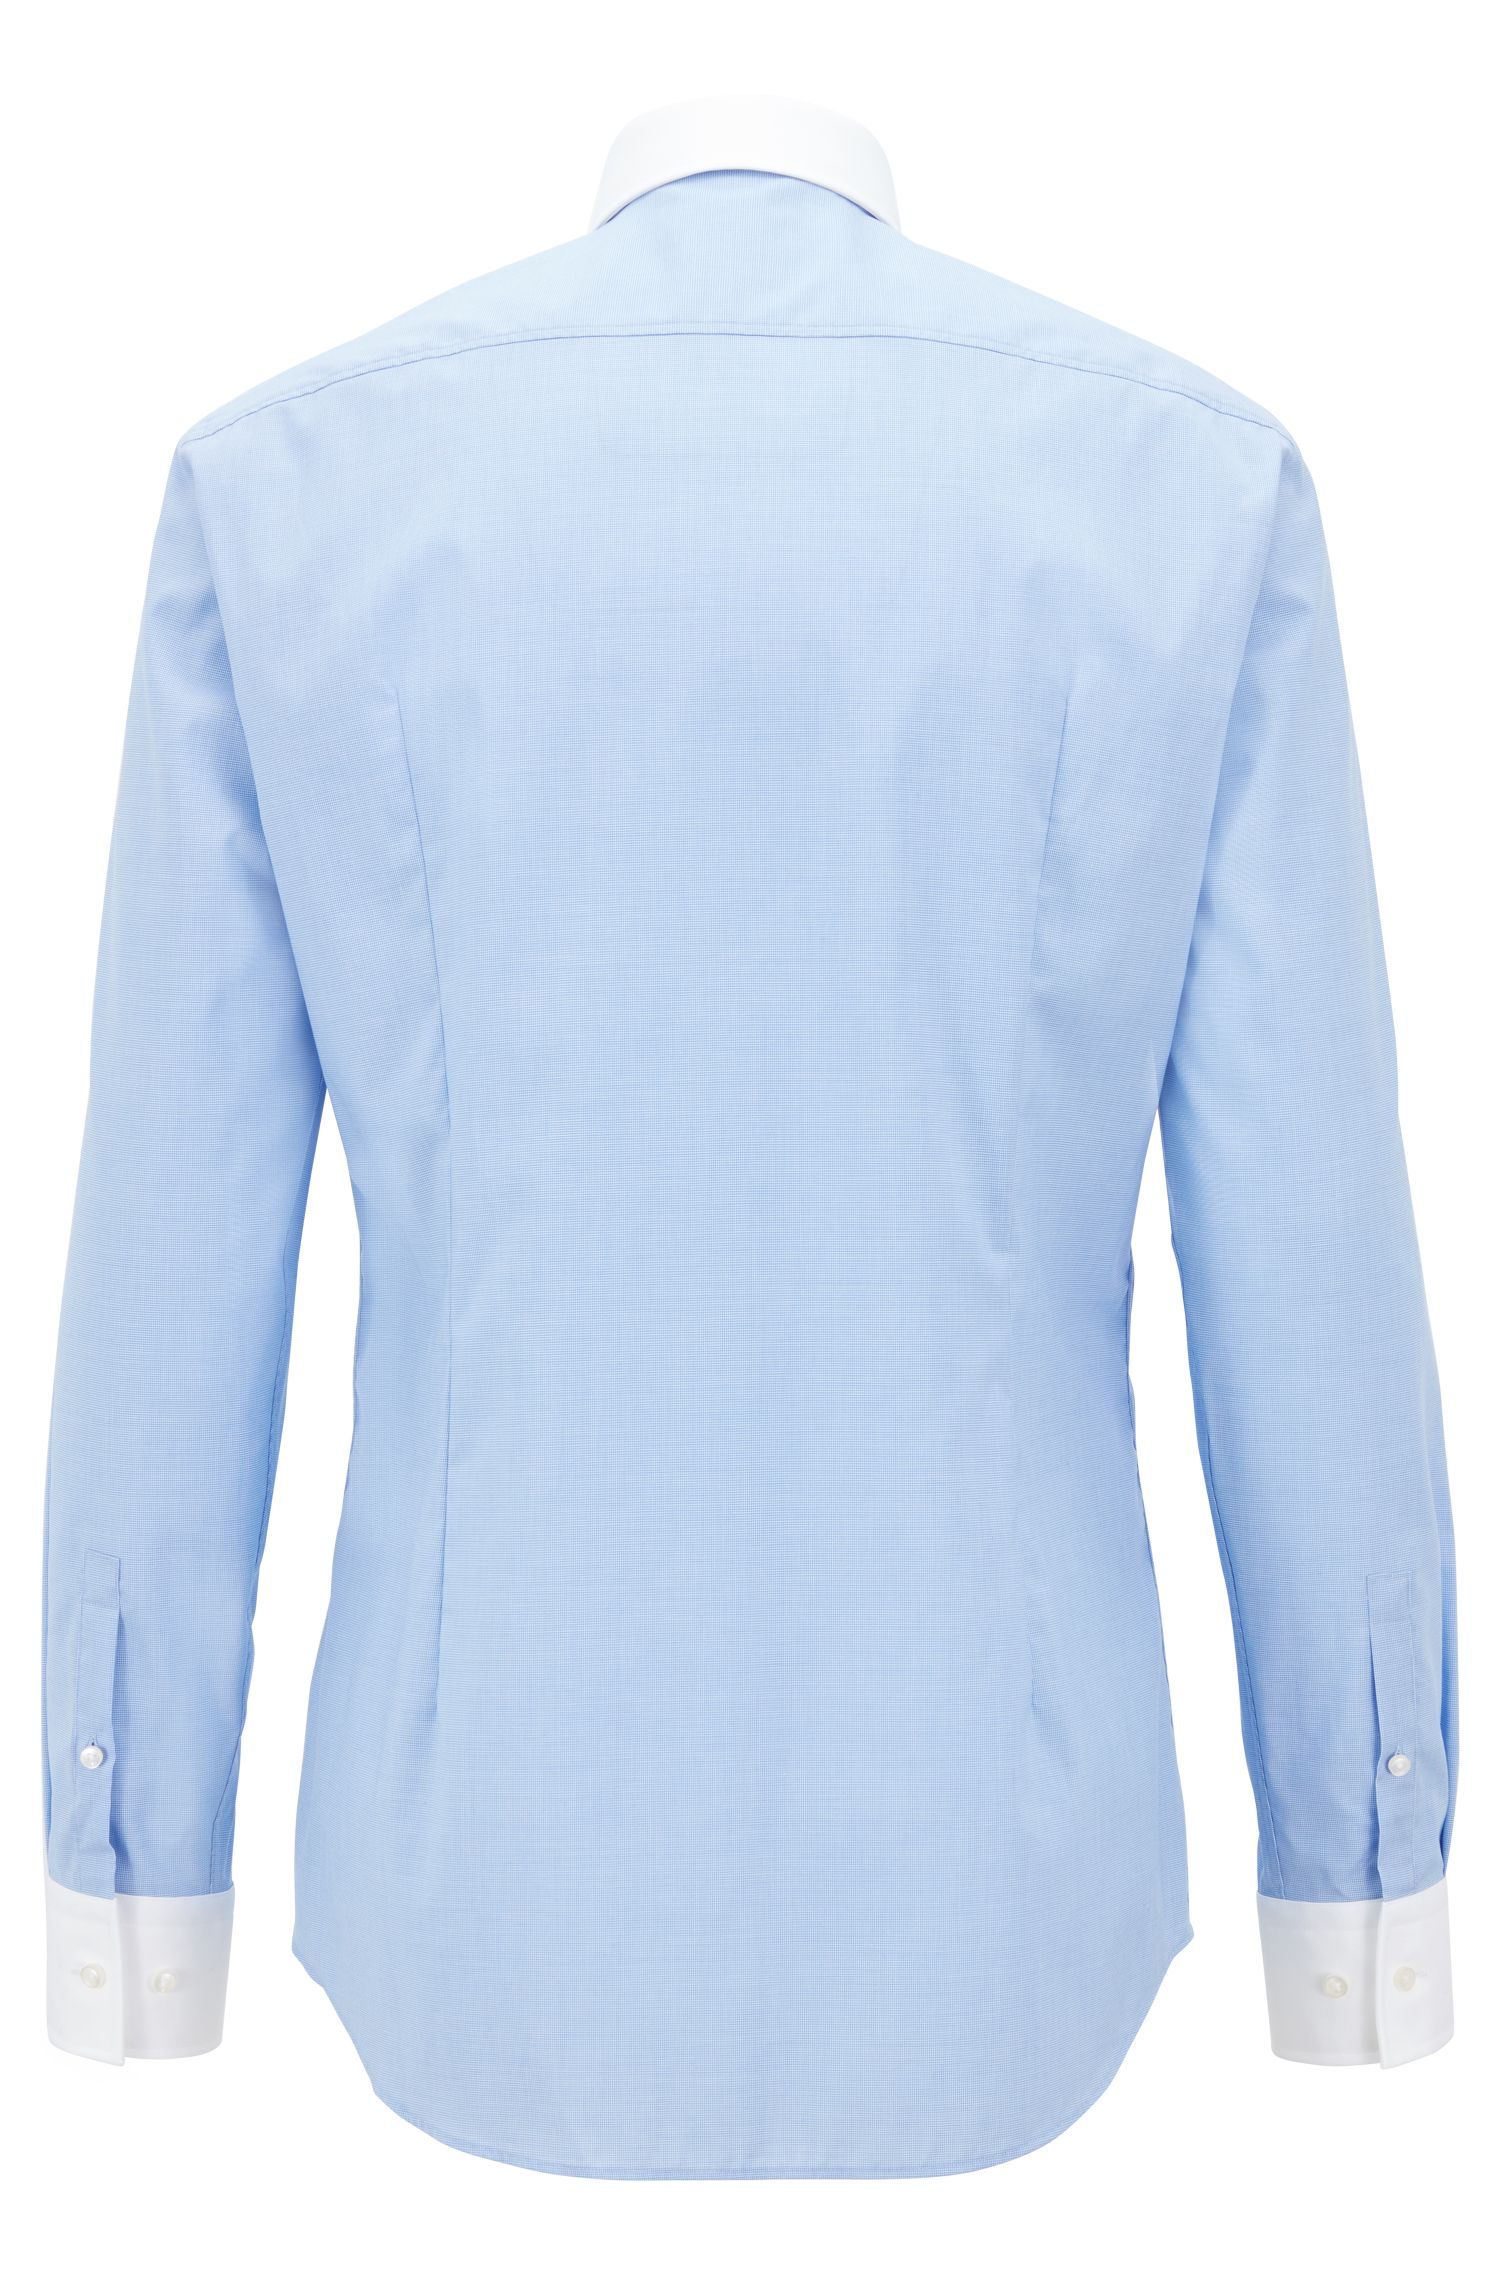 Slim-fit shirt in easy-iron micro-patterned cotton, Light Blue